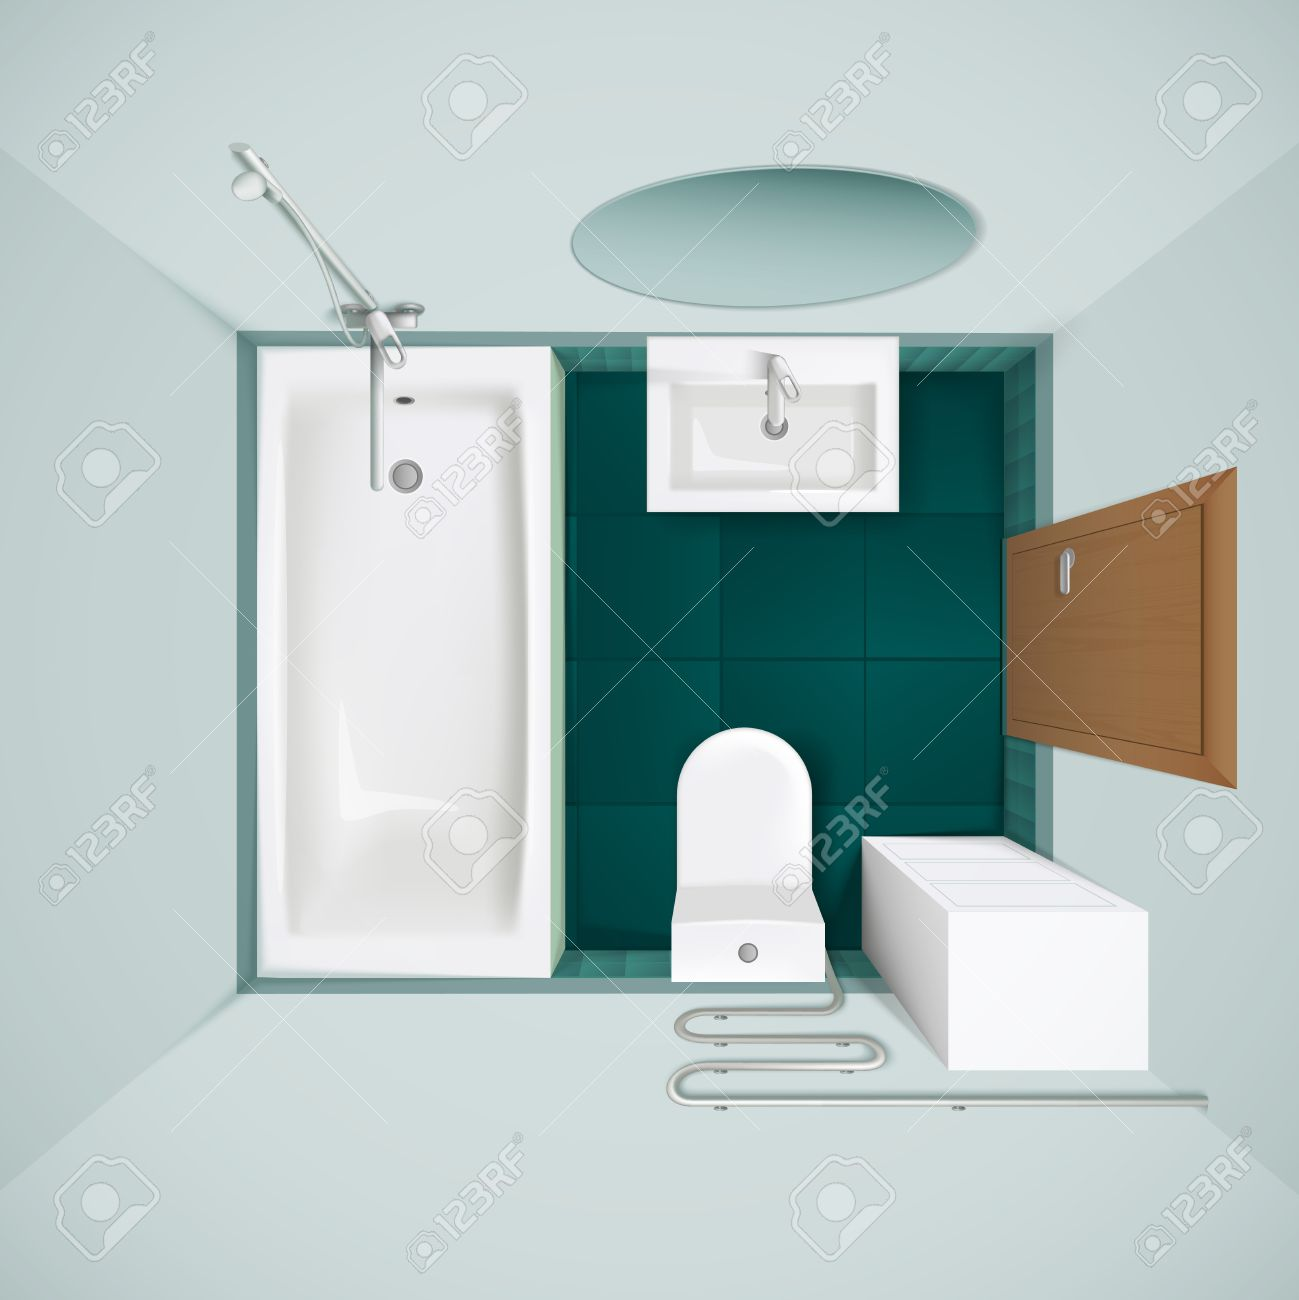 Little bathroom with green floor tiles bathtub toilet bowl and little bathroom with green floor tiles bathtub toilet bowl and sink realistic top view image vector dailygadgetfo Images